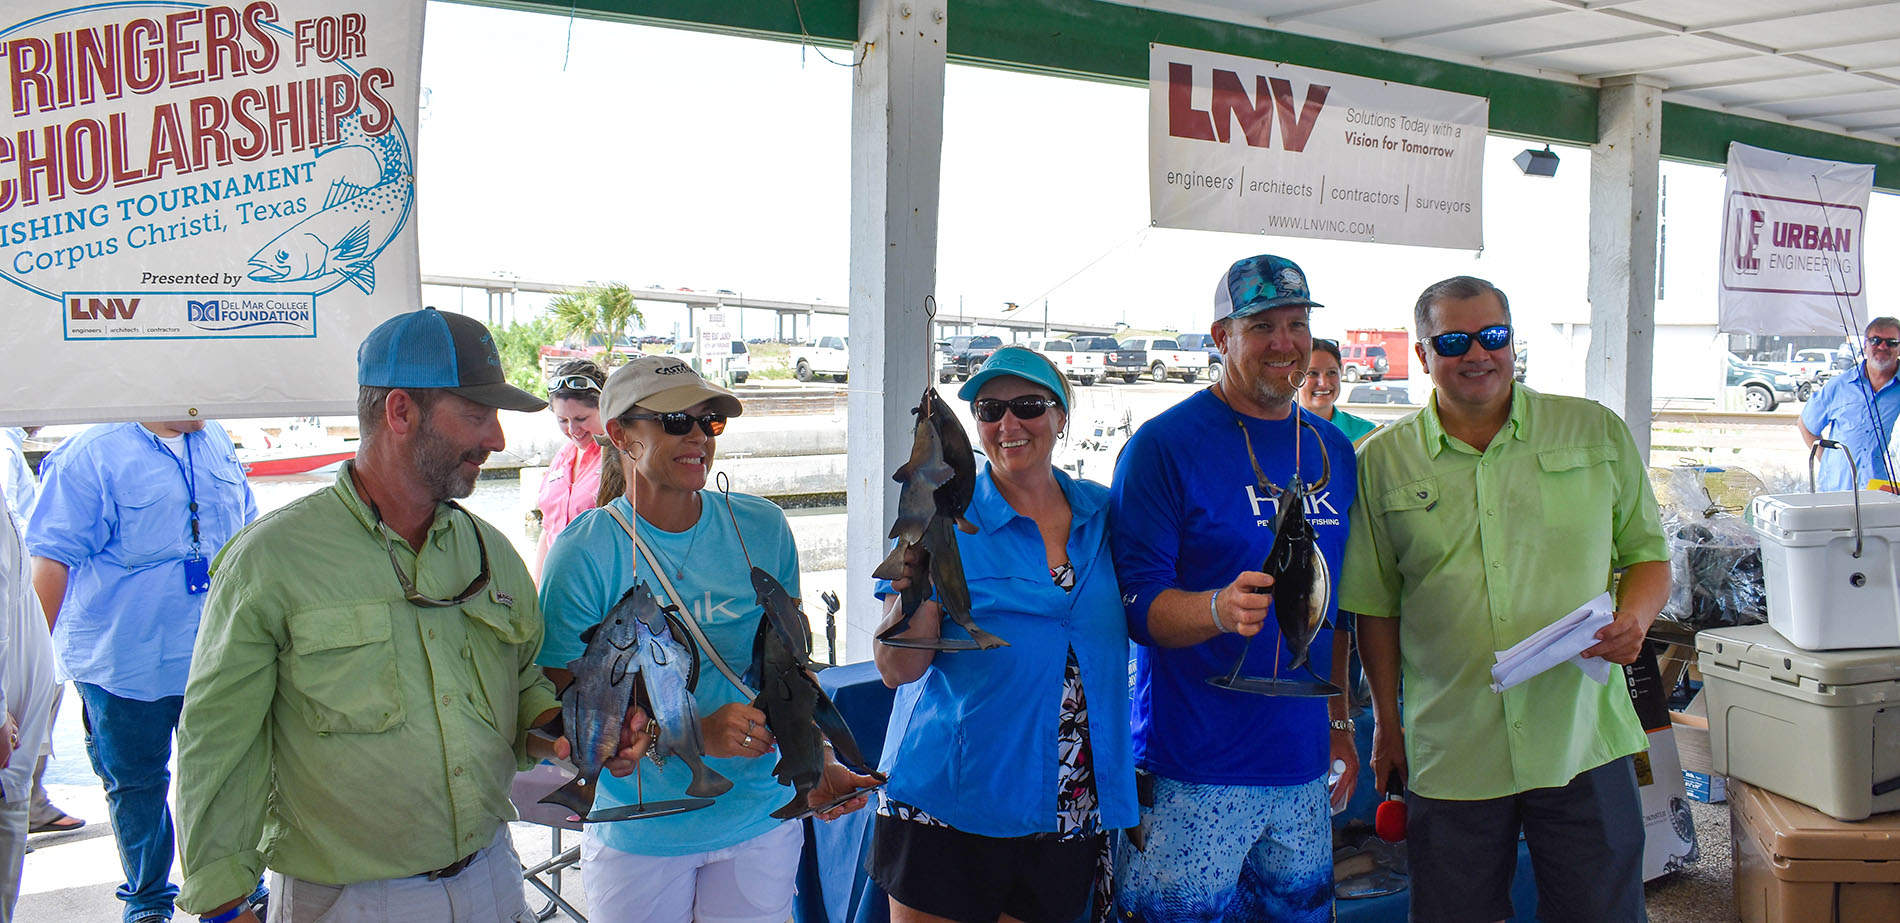 Trophy winners at the 2018 Stringers for Scholarships fishing tournament